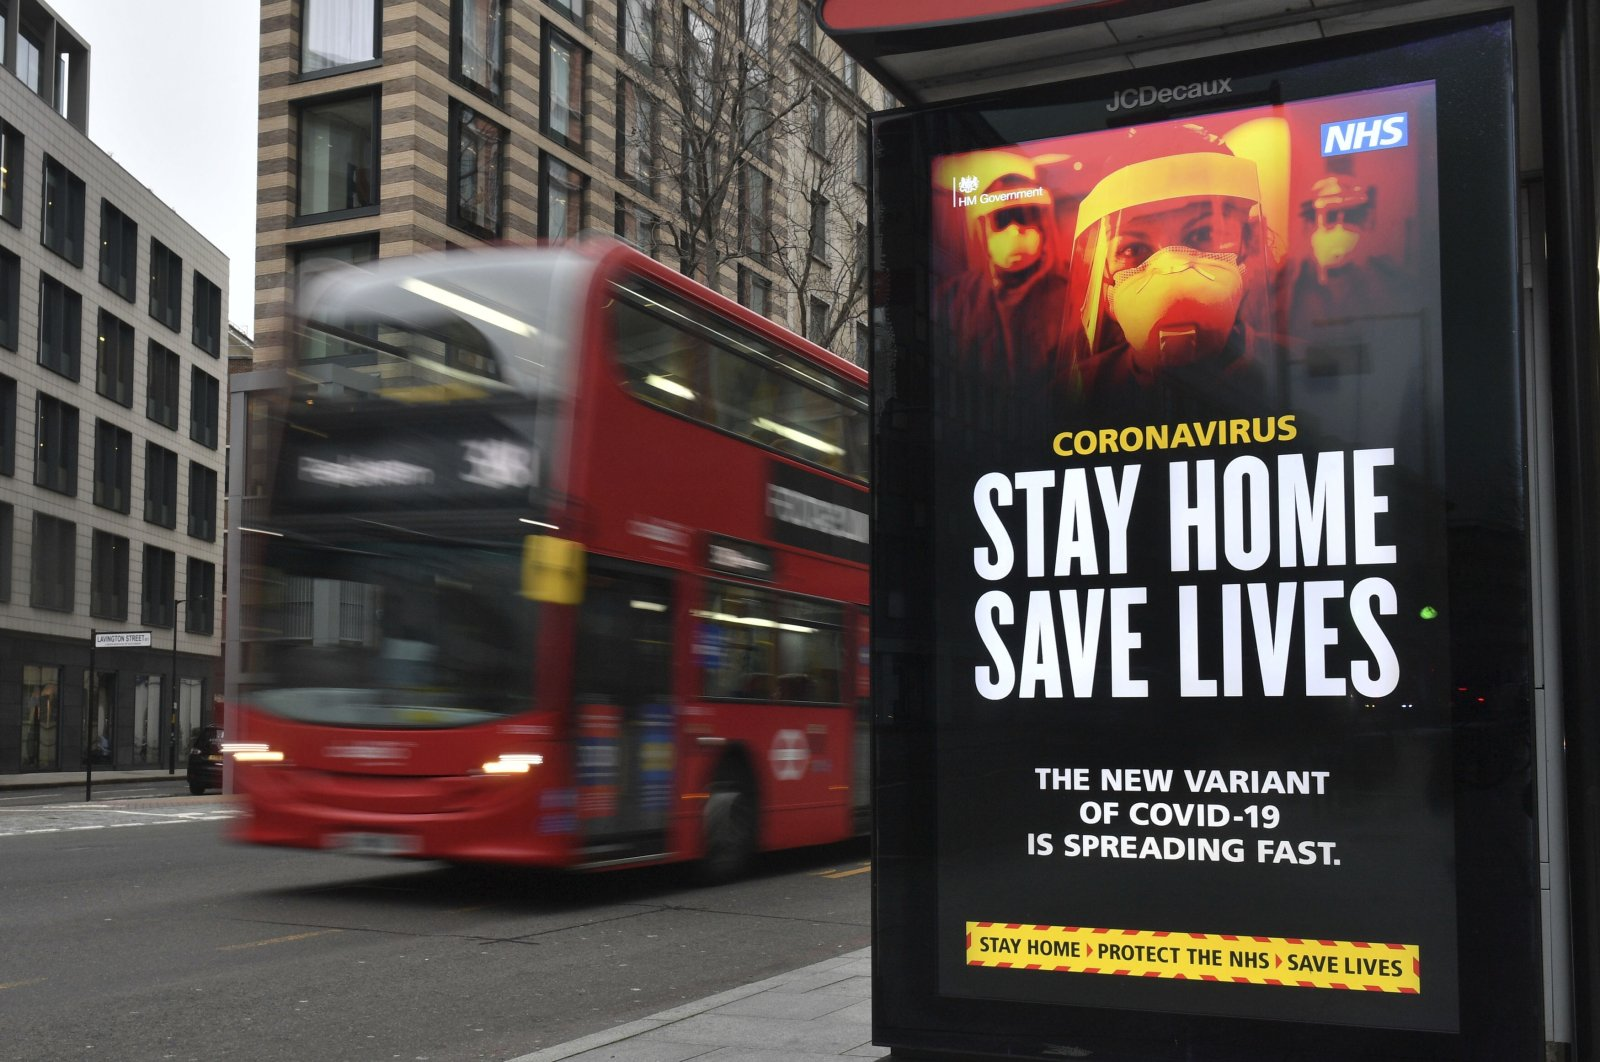 A London Transport famous red bus passing a COVID-19 sign during England's third national lockdown to curb the spread of coronavirus, London, the U.K., Friday, Jan. 8, 2021. (AP Photo)